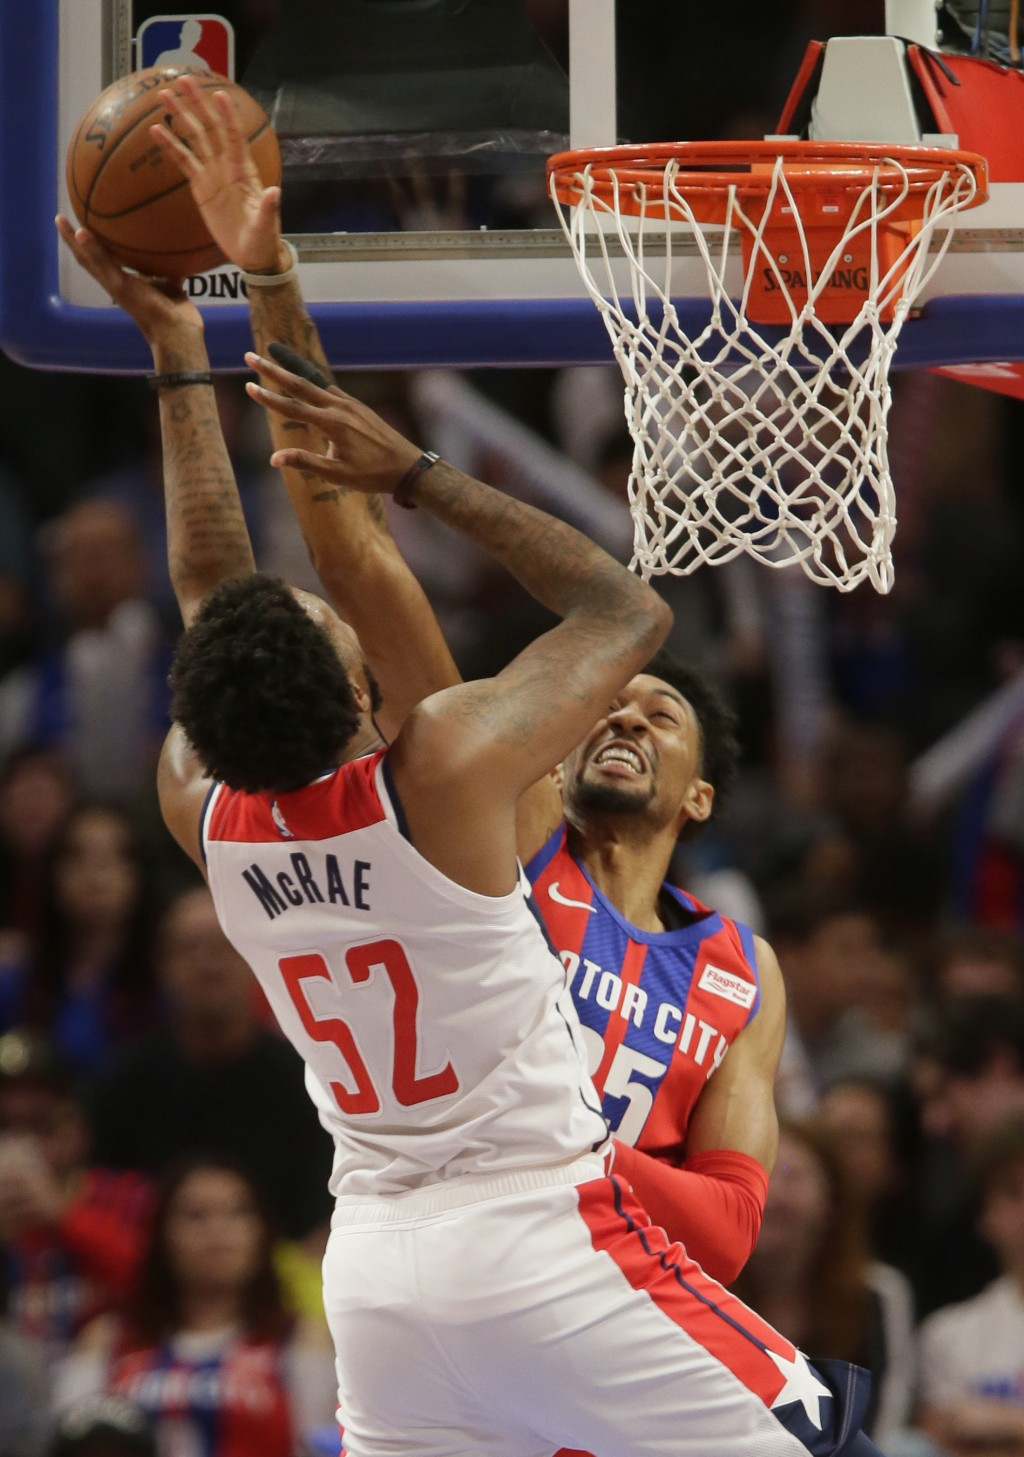 Detroit Pistons forward Christian Wood, right, defends against a shot by Washington Wizards guard Jordan McRae (52) during the first half of an NBA ba...